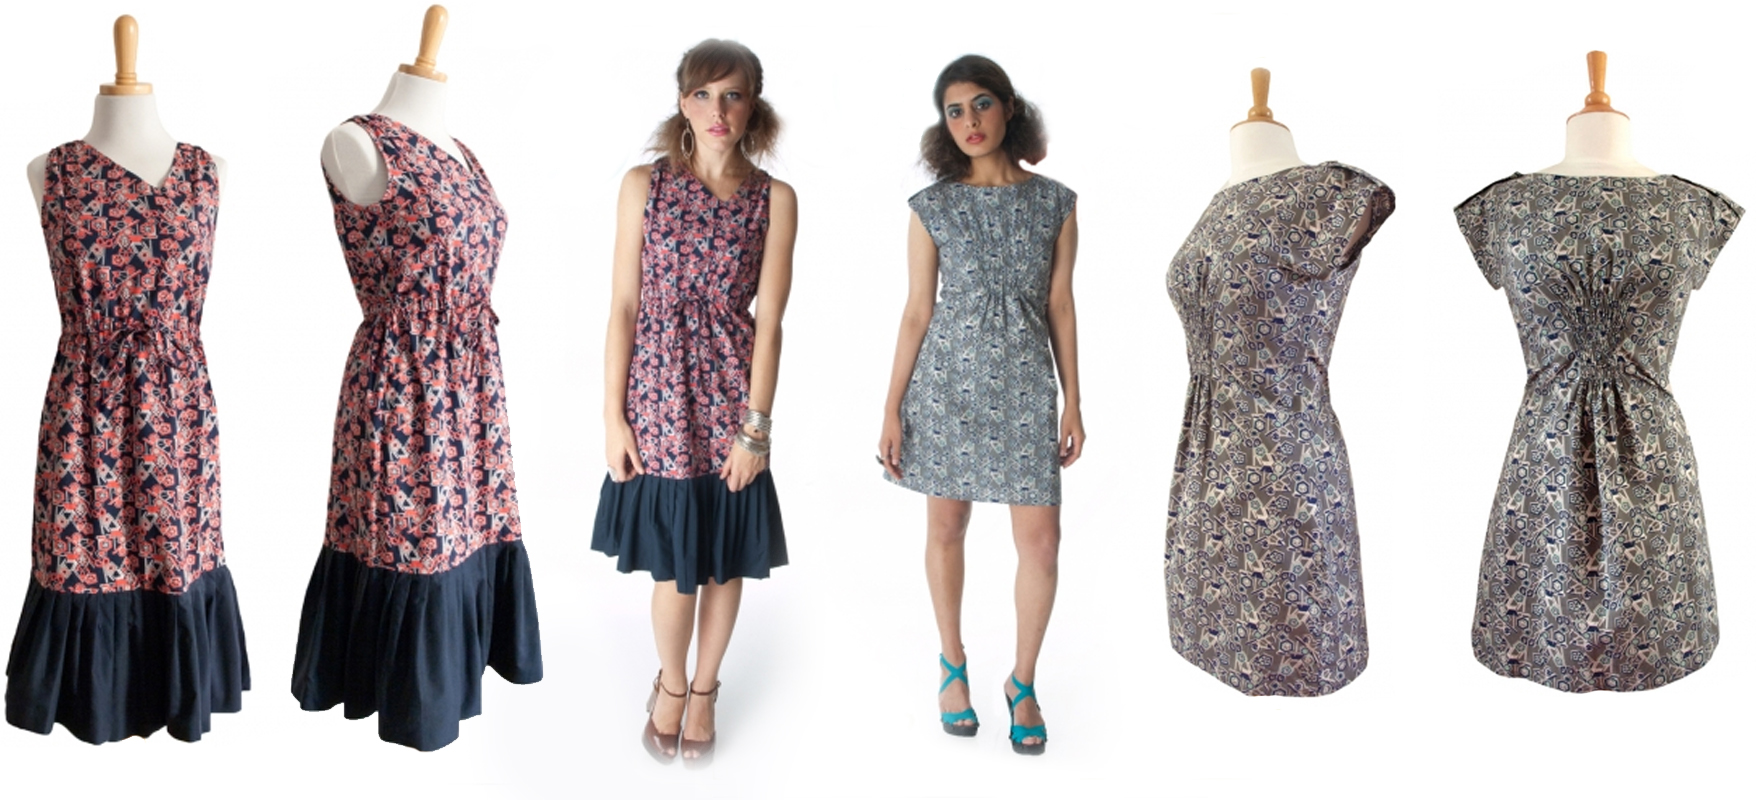 Tools of the Trade print. Dahee Dress on the left and Shanghai Shift Gray on the right.